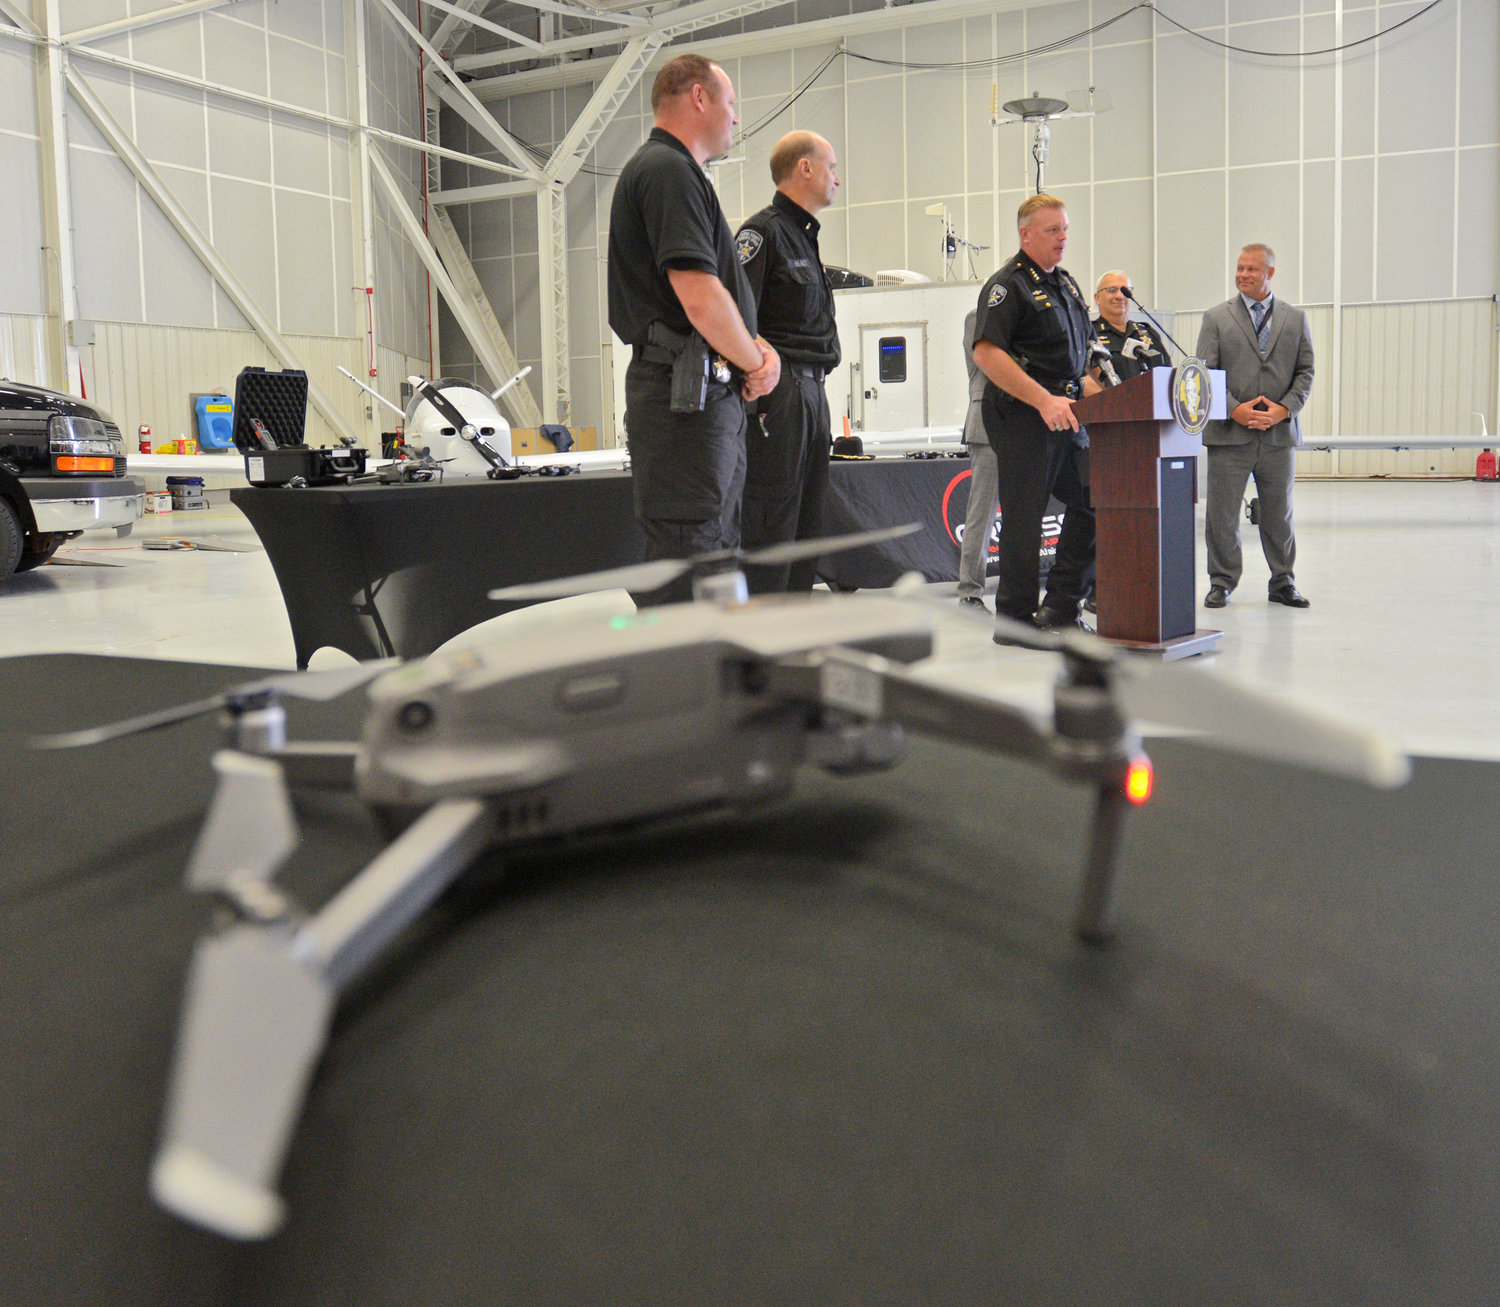 NEW DRONE UNIT — Sheriff Robert M. Maciol announced the creation of a new Unmanned Aircraft Systems Unit for the Sheriff's Office this morning at the Griffiss International Airport.